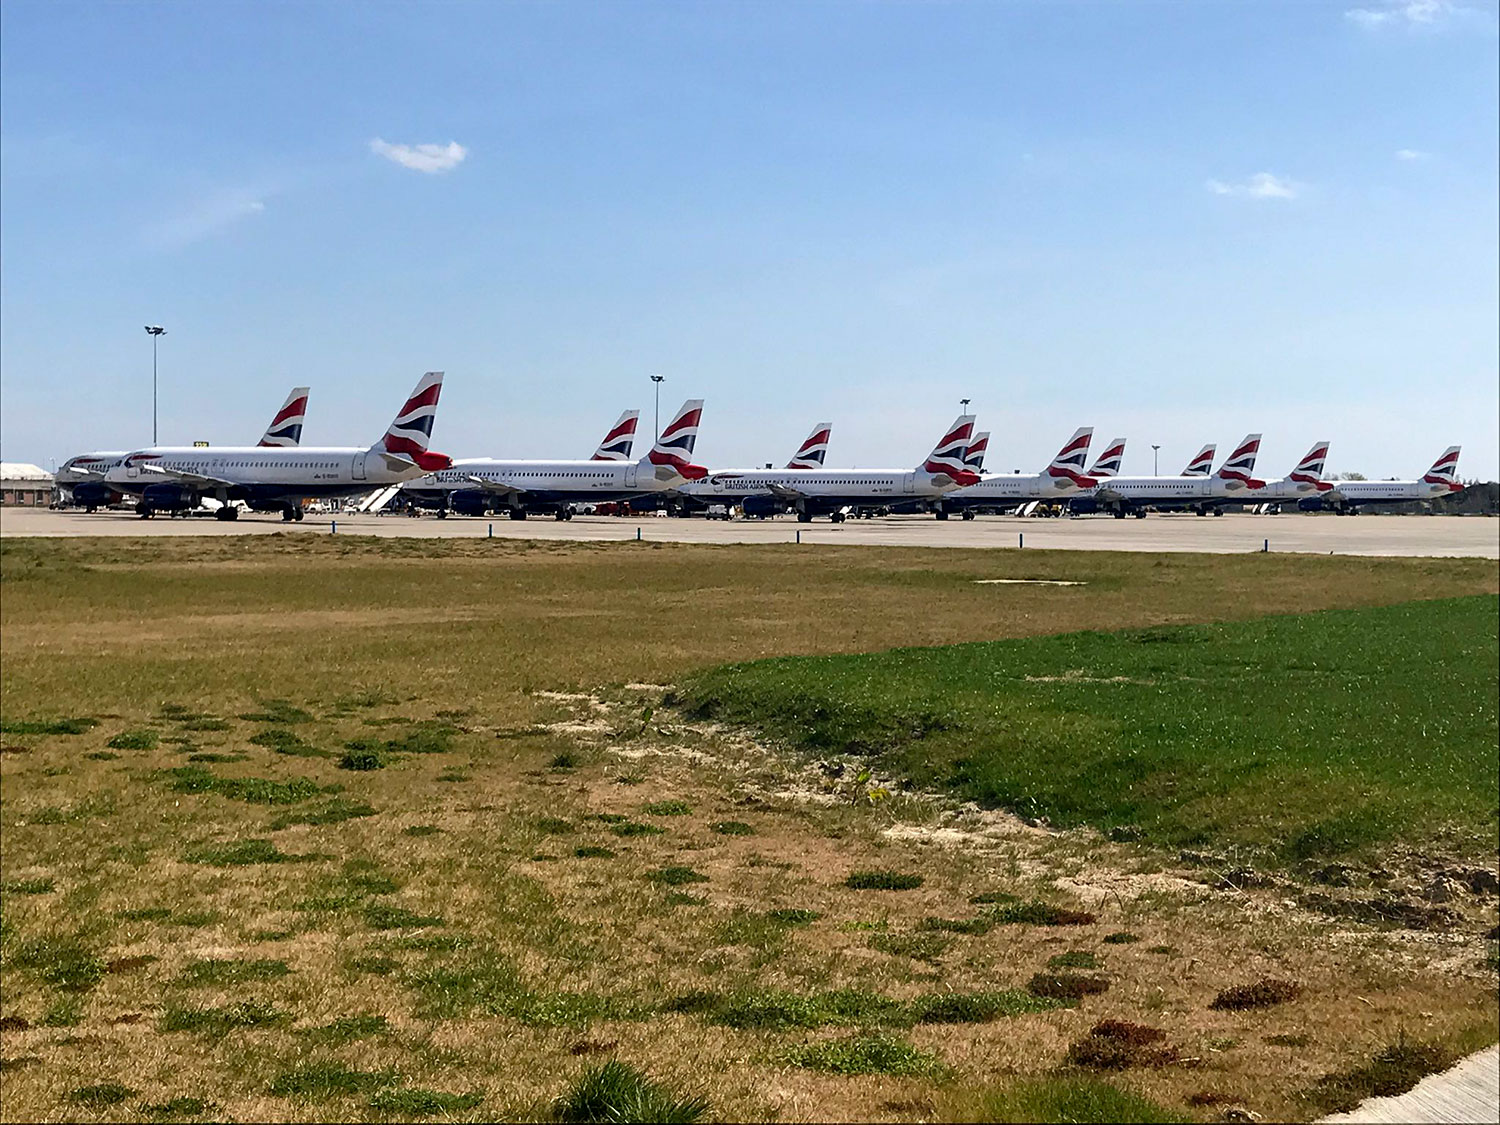 British Airways p;anes lined up at Gatwick Airport